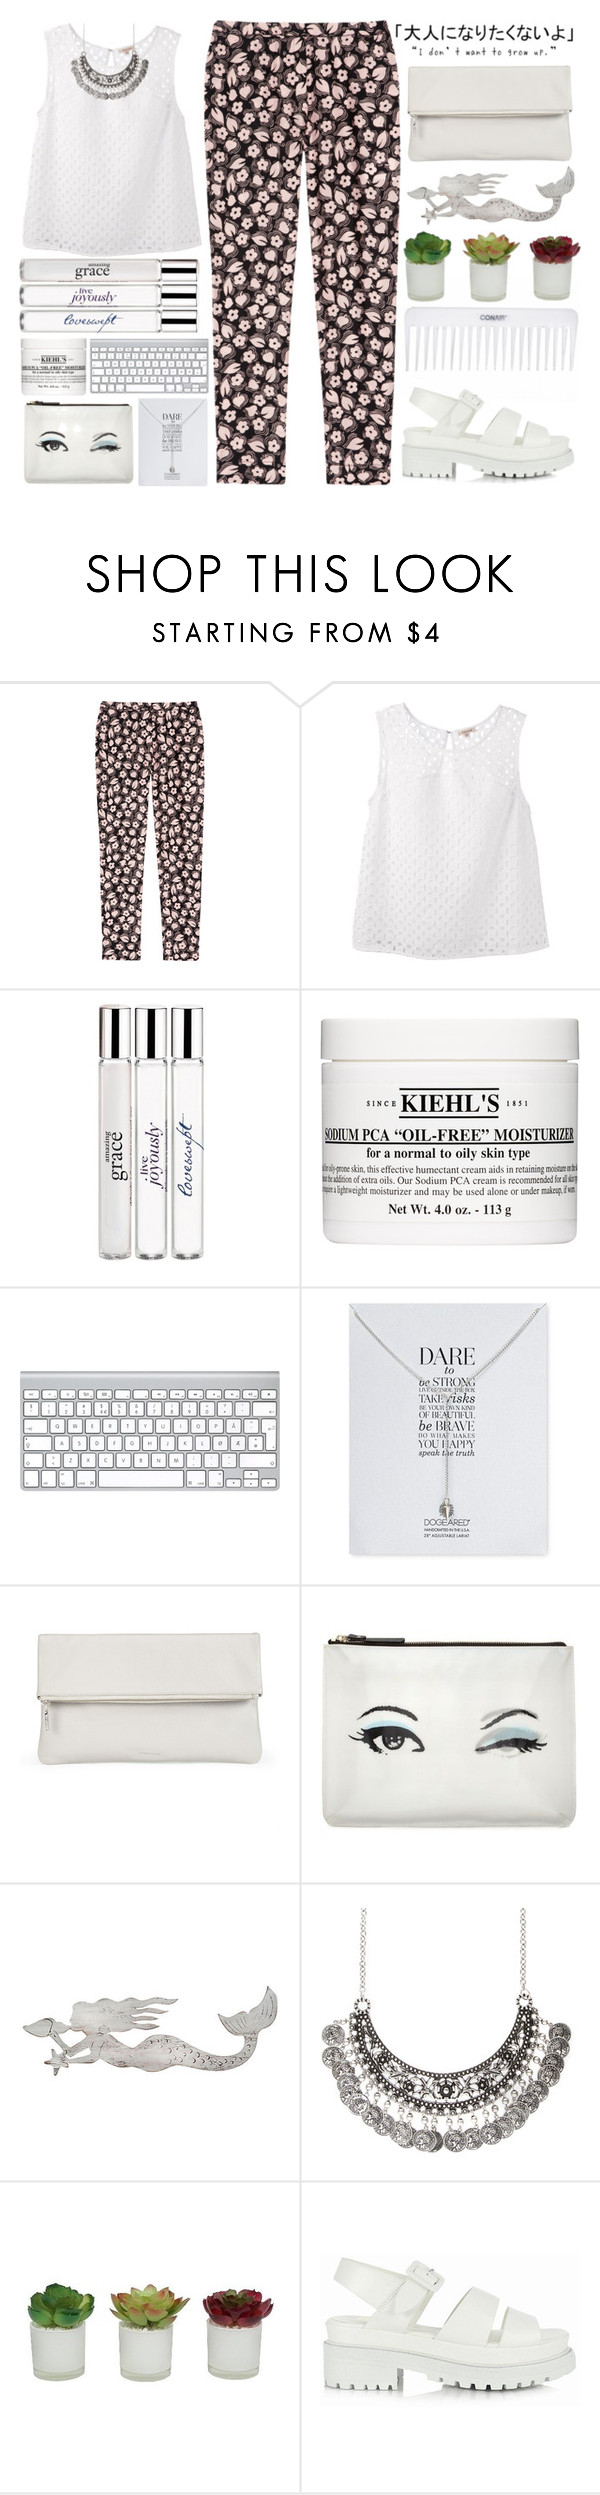 """""""find someone who will change your life, ot just your status."""" by itajansen ❤ liked on Polyvore featuring Nina Ricci, P.A.R.O.S.H., philosophy, Kiehl's, Dogeared, Whistles, Kate Spade, Slippin' Southern, Conair and Threshold"""